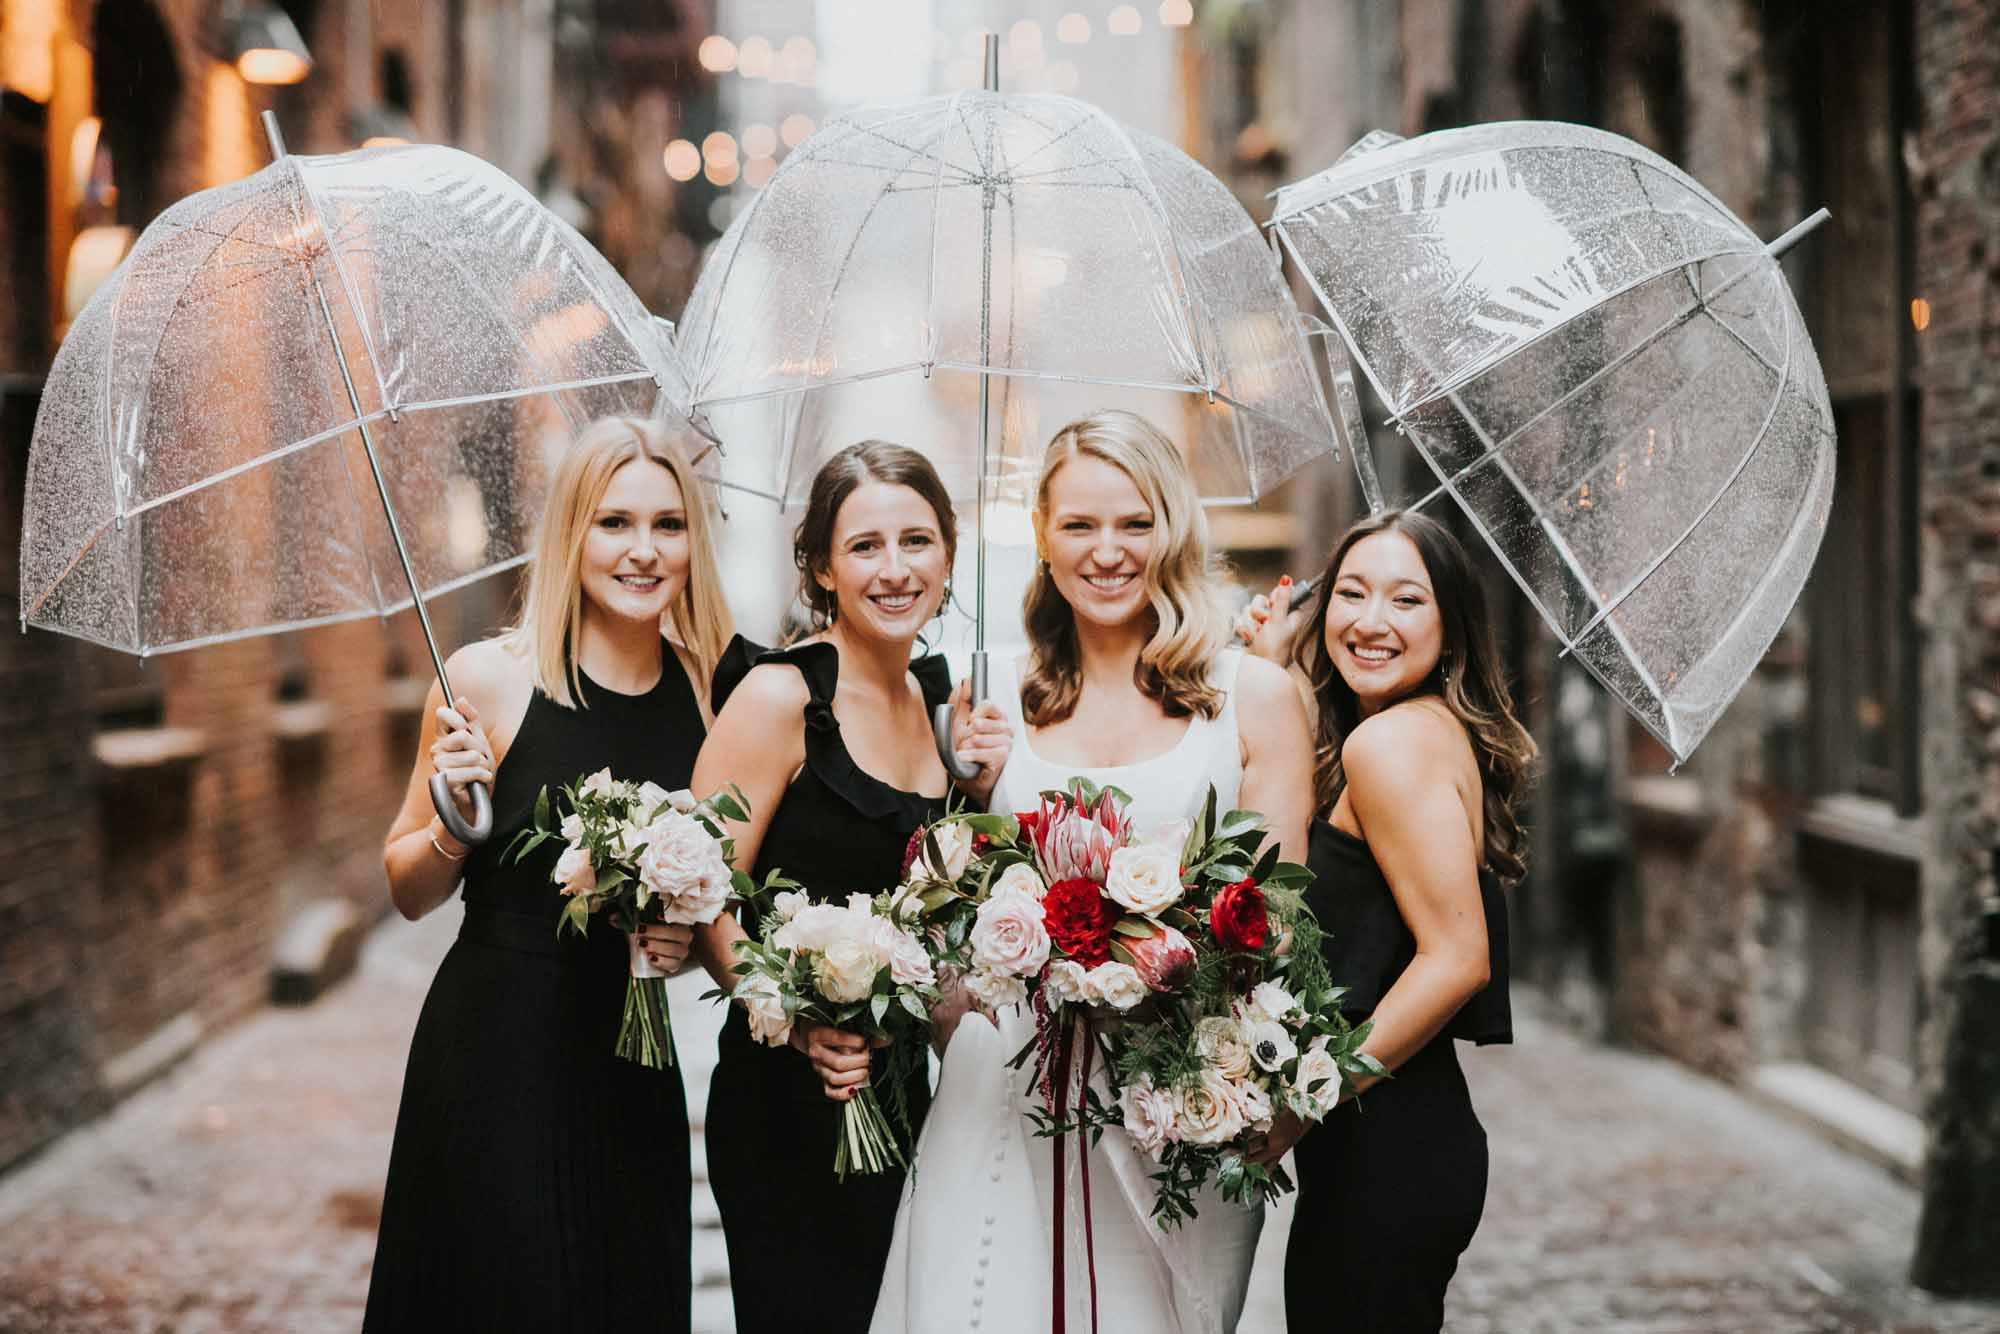 Bride and bridemaids pose under clear umbrellas